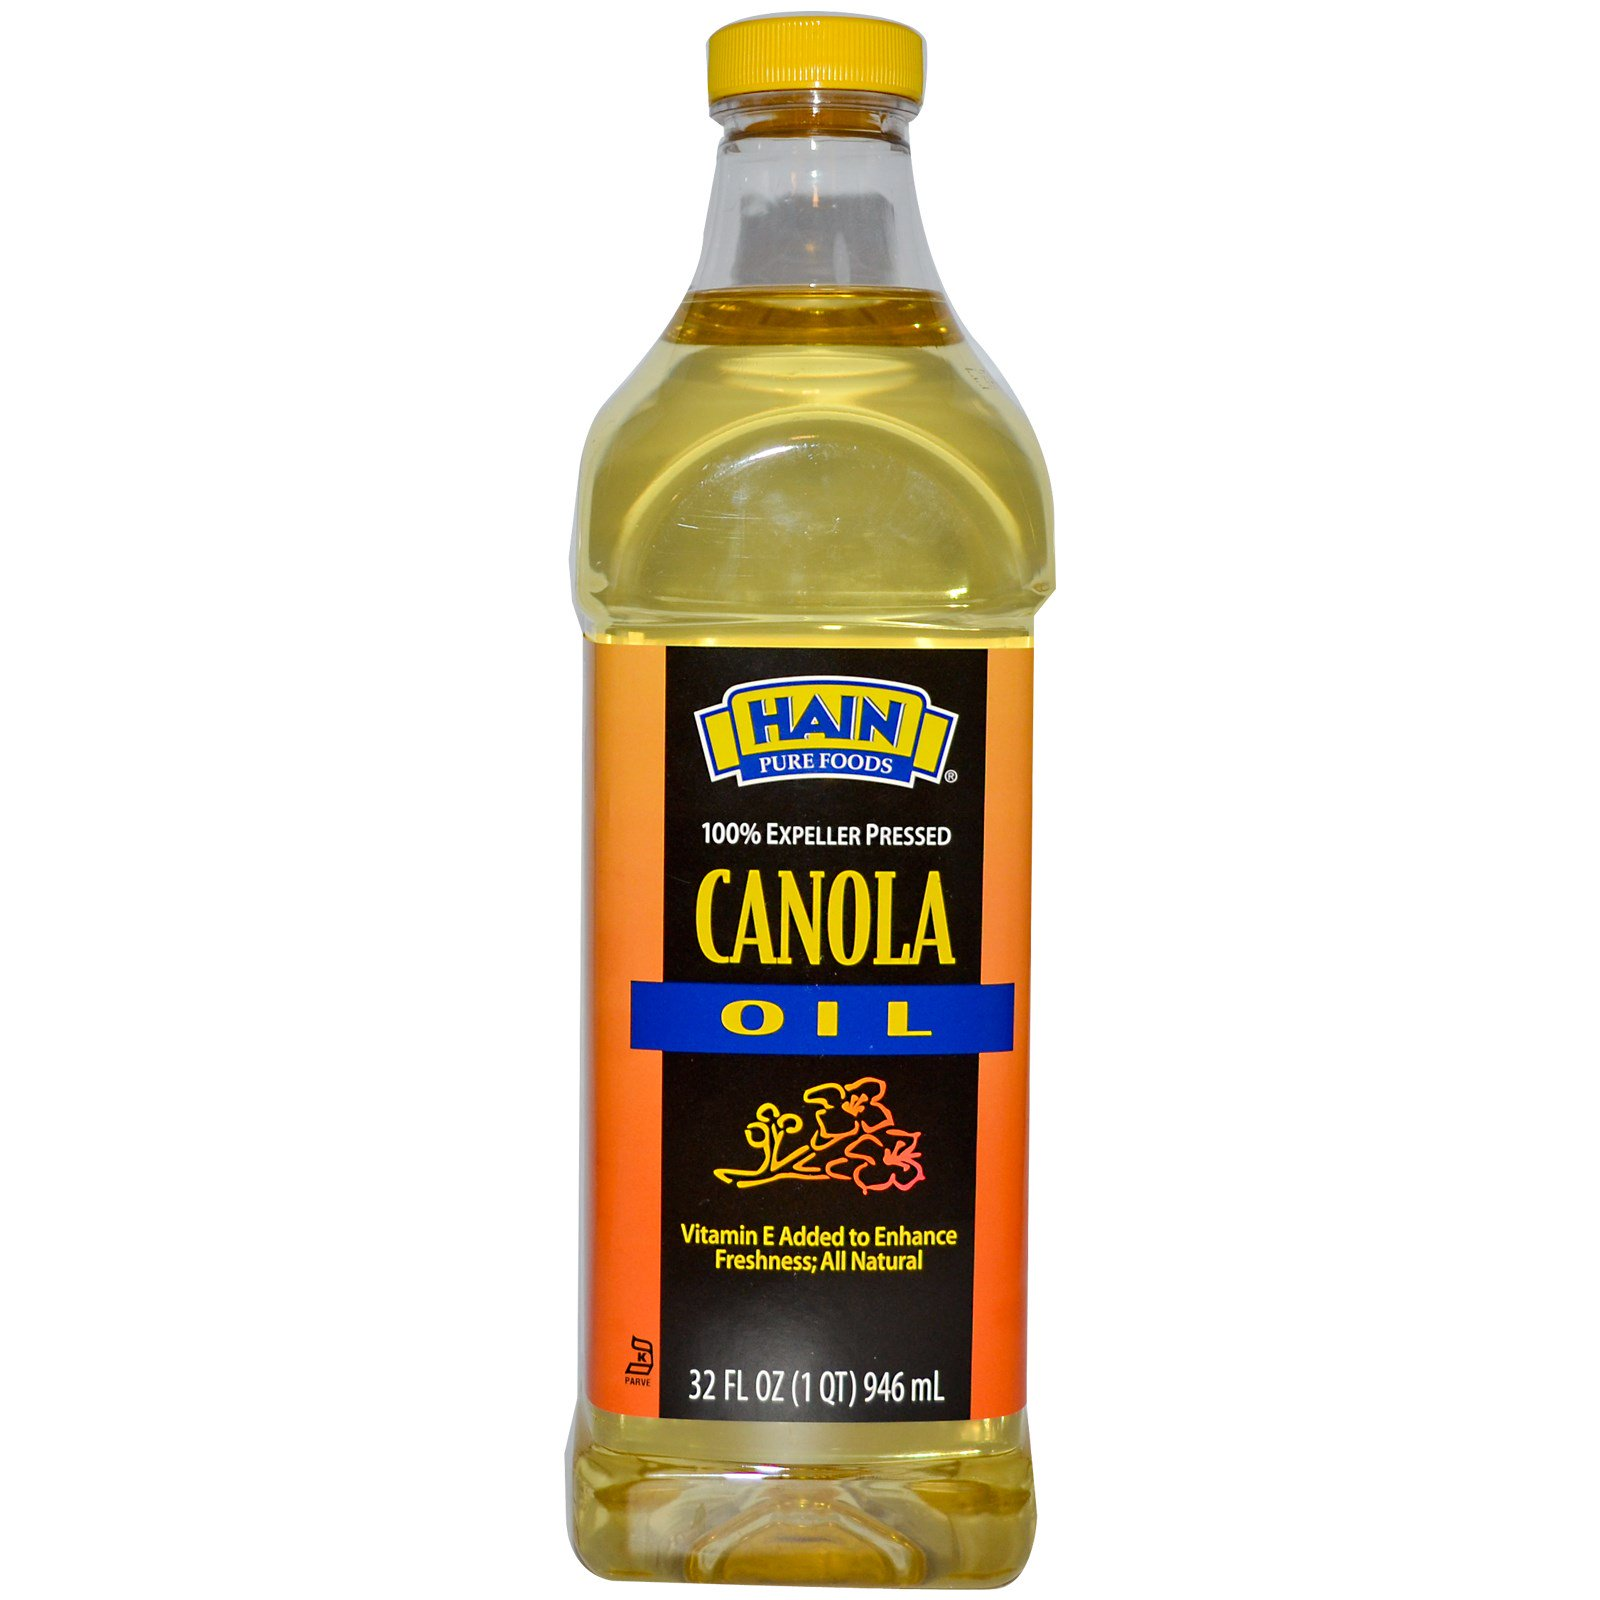 an introduction to the oil prices nowadays and the concept of canola flower in canada Such qualities make food processors willing to pay a premium for sunflowerseed oil over soybean oil us prices for sunflower oil generally move in unison with other vegetable oil prices, with sunflower oil commanding a premium it is a common practice for those trading sunflower oil to hedge in the soybean oil futures market.